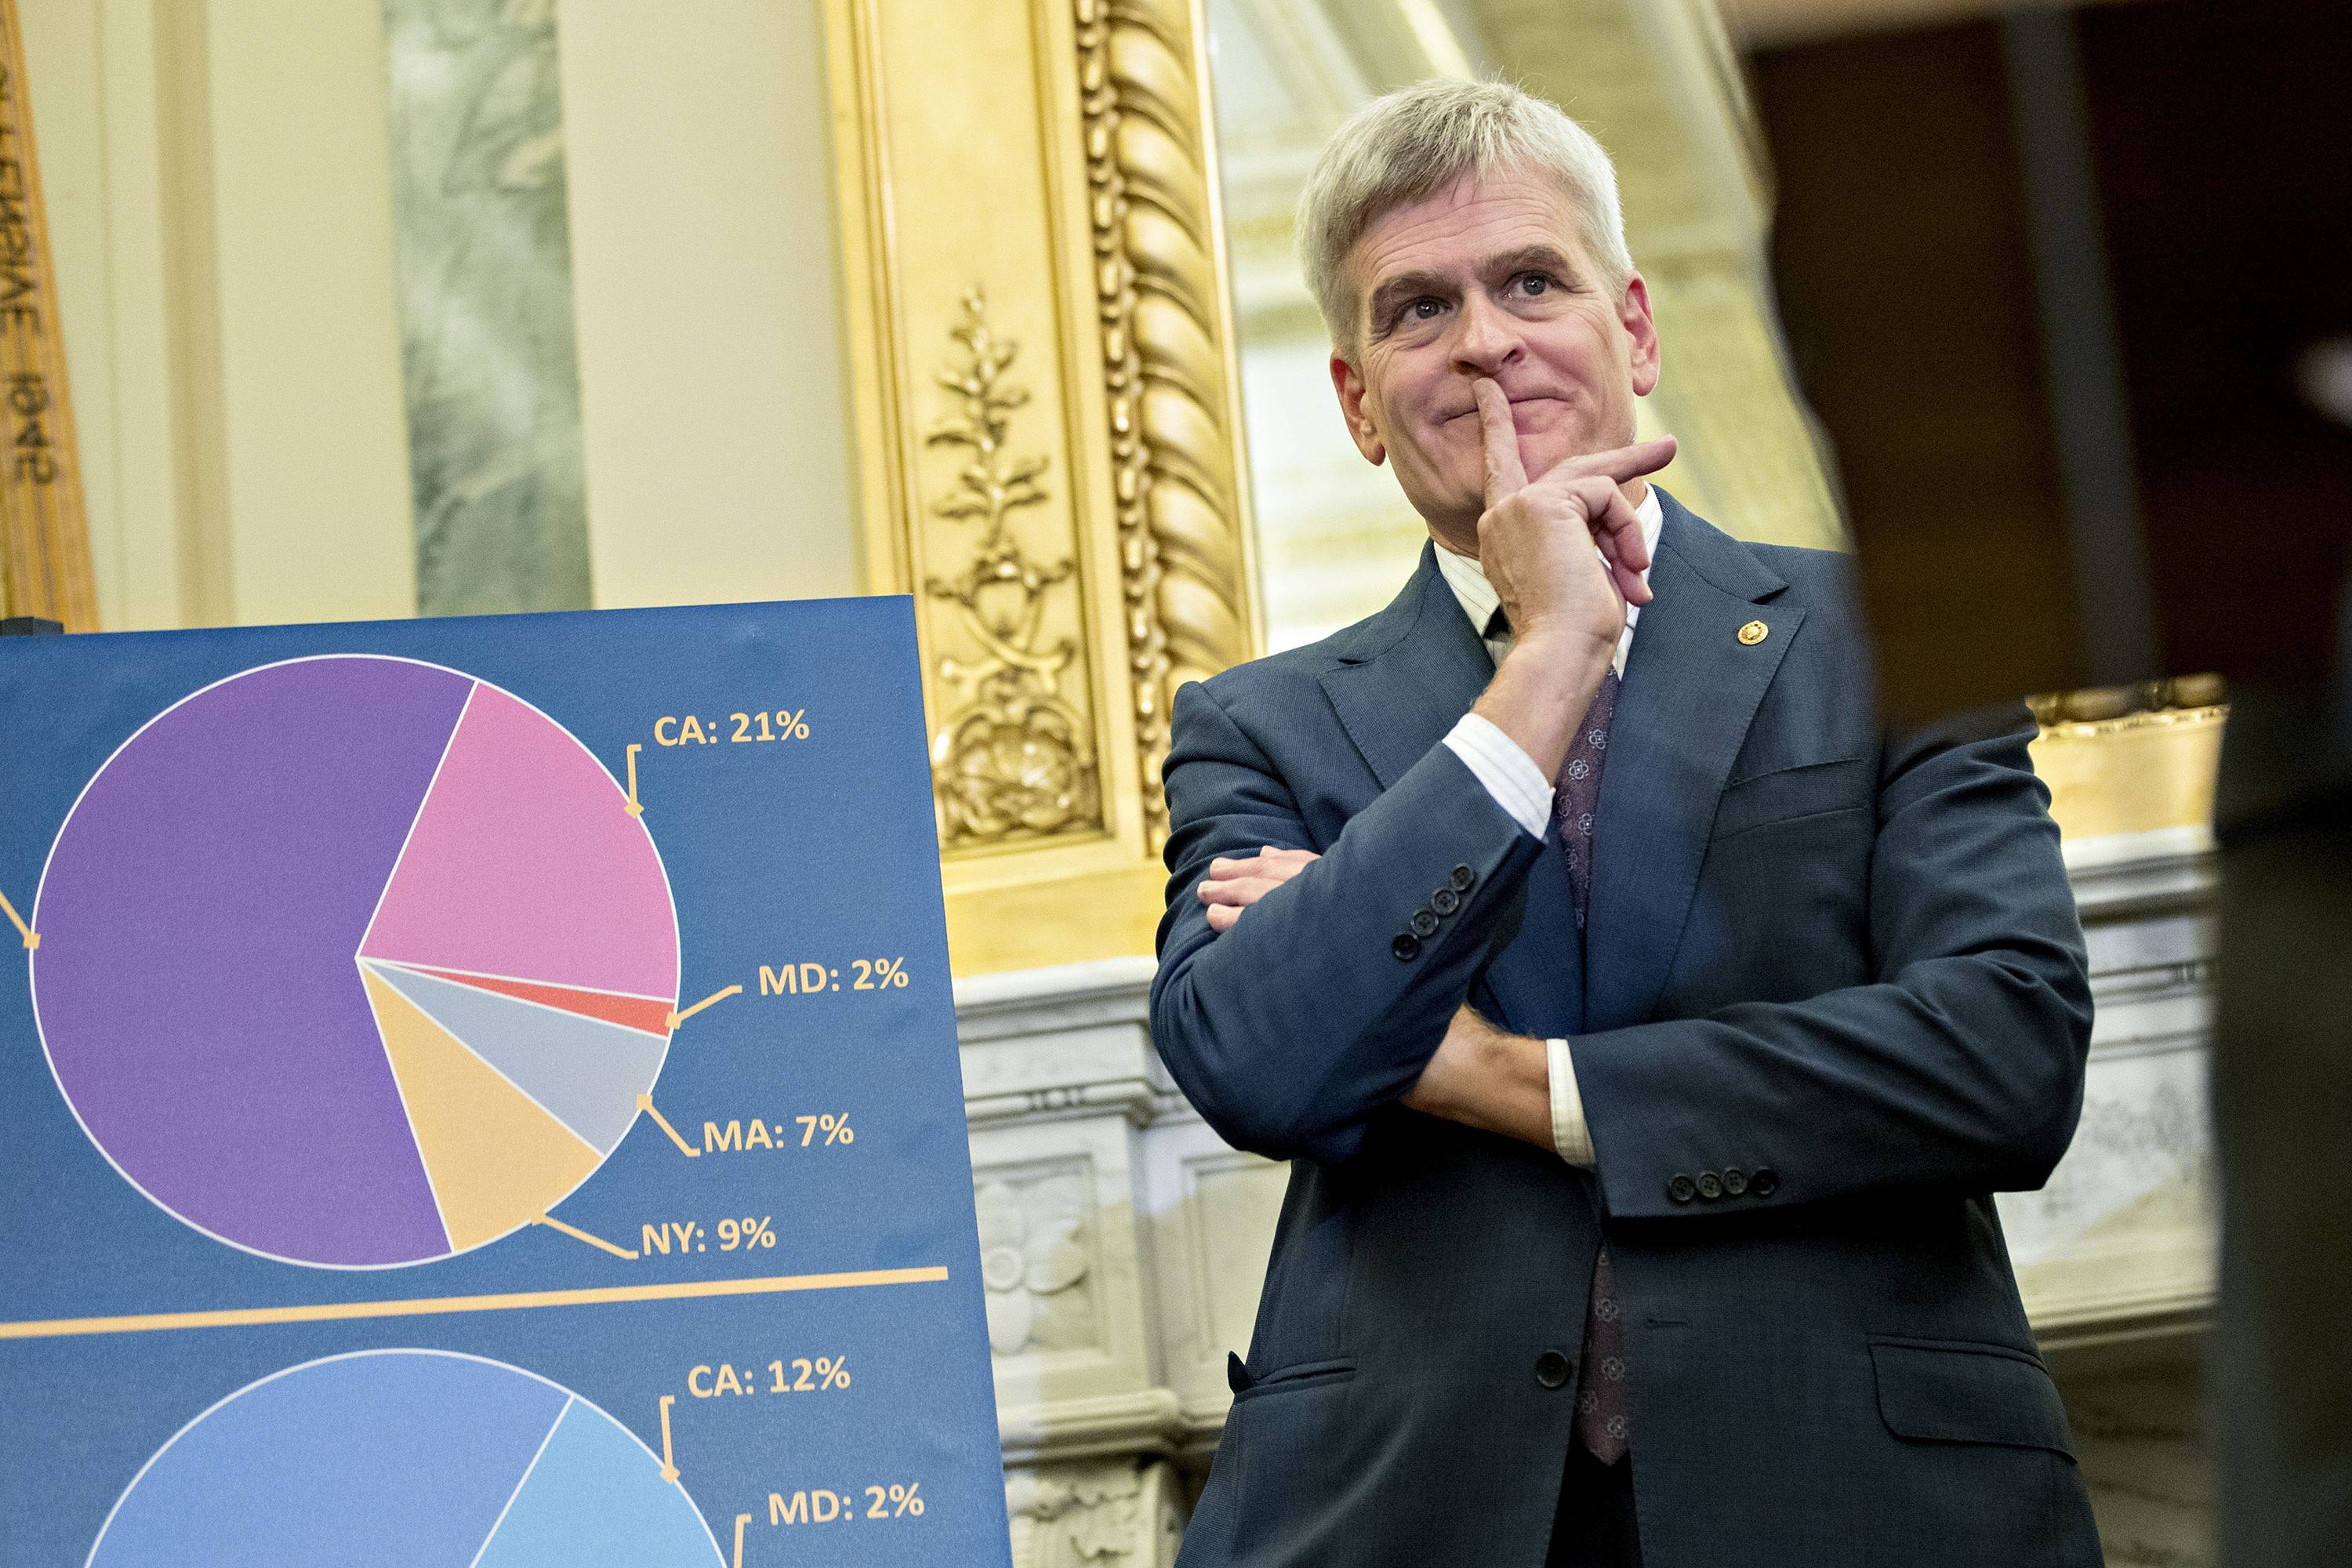 Sen. Bill Cassidy of Louisiana listens a news conference about the health care plan he and three other Republican senators are pushing to upend major elements of the Affordable Care Act.